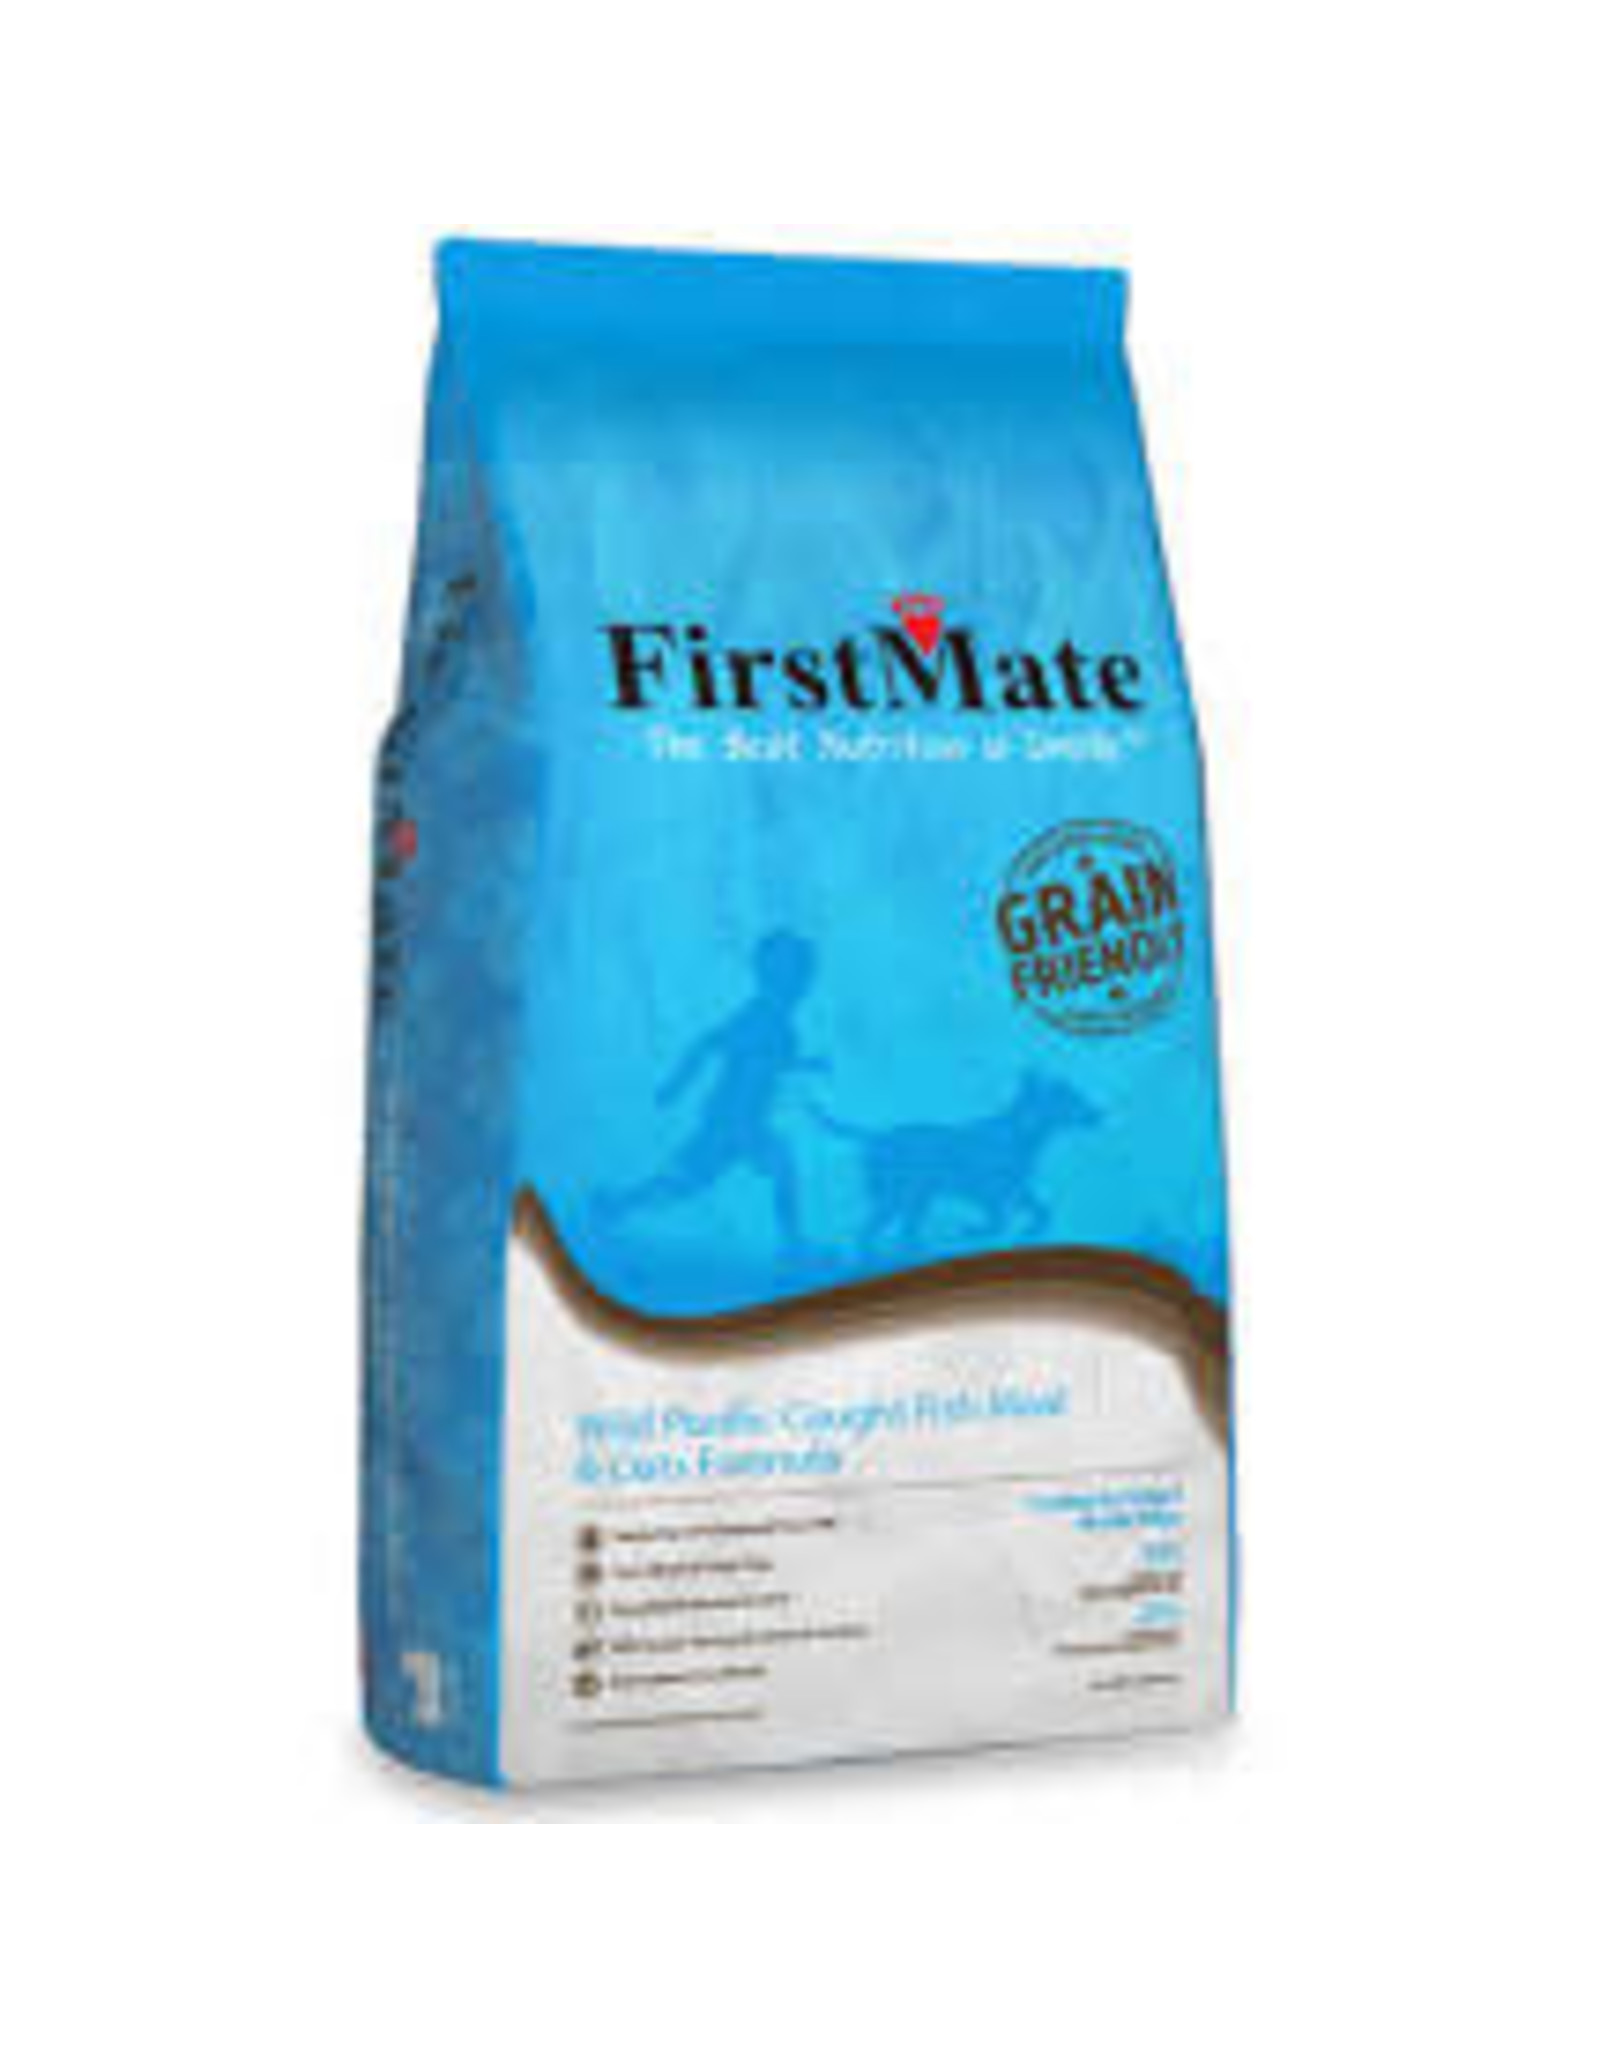 FirstMate FirstMate - Grain friendly Wild Pacific Fish & Oats Dog